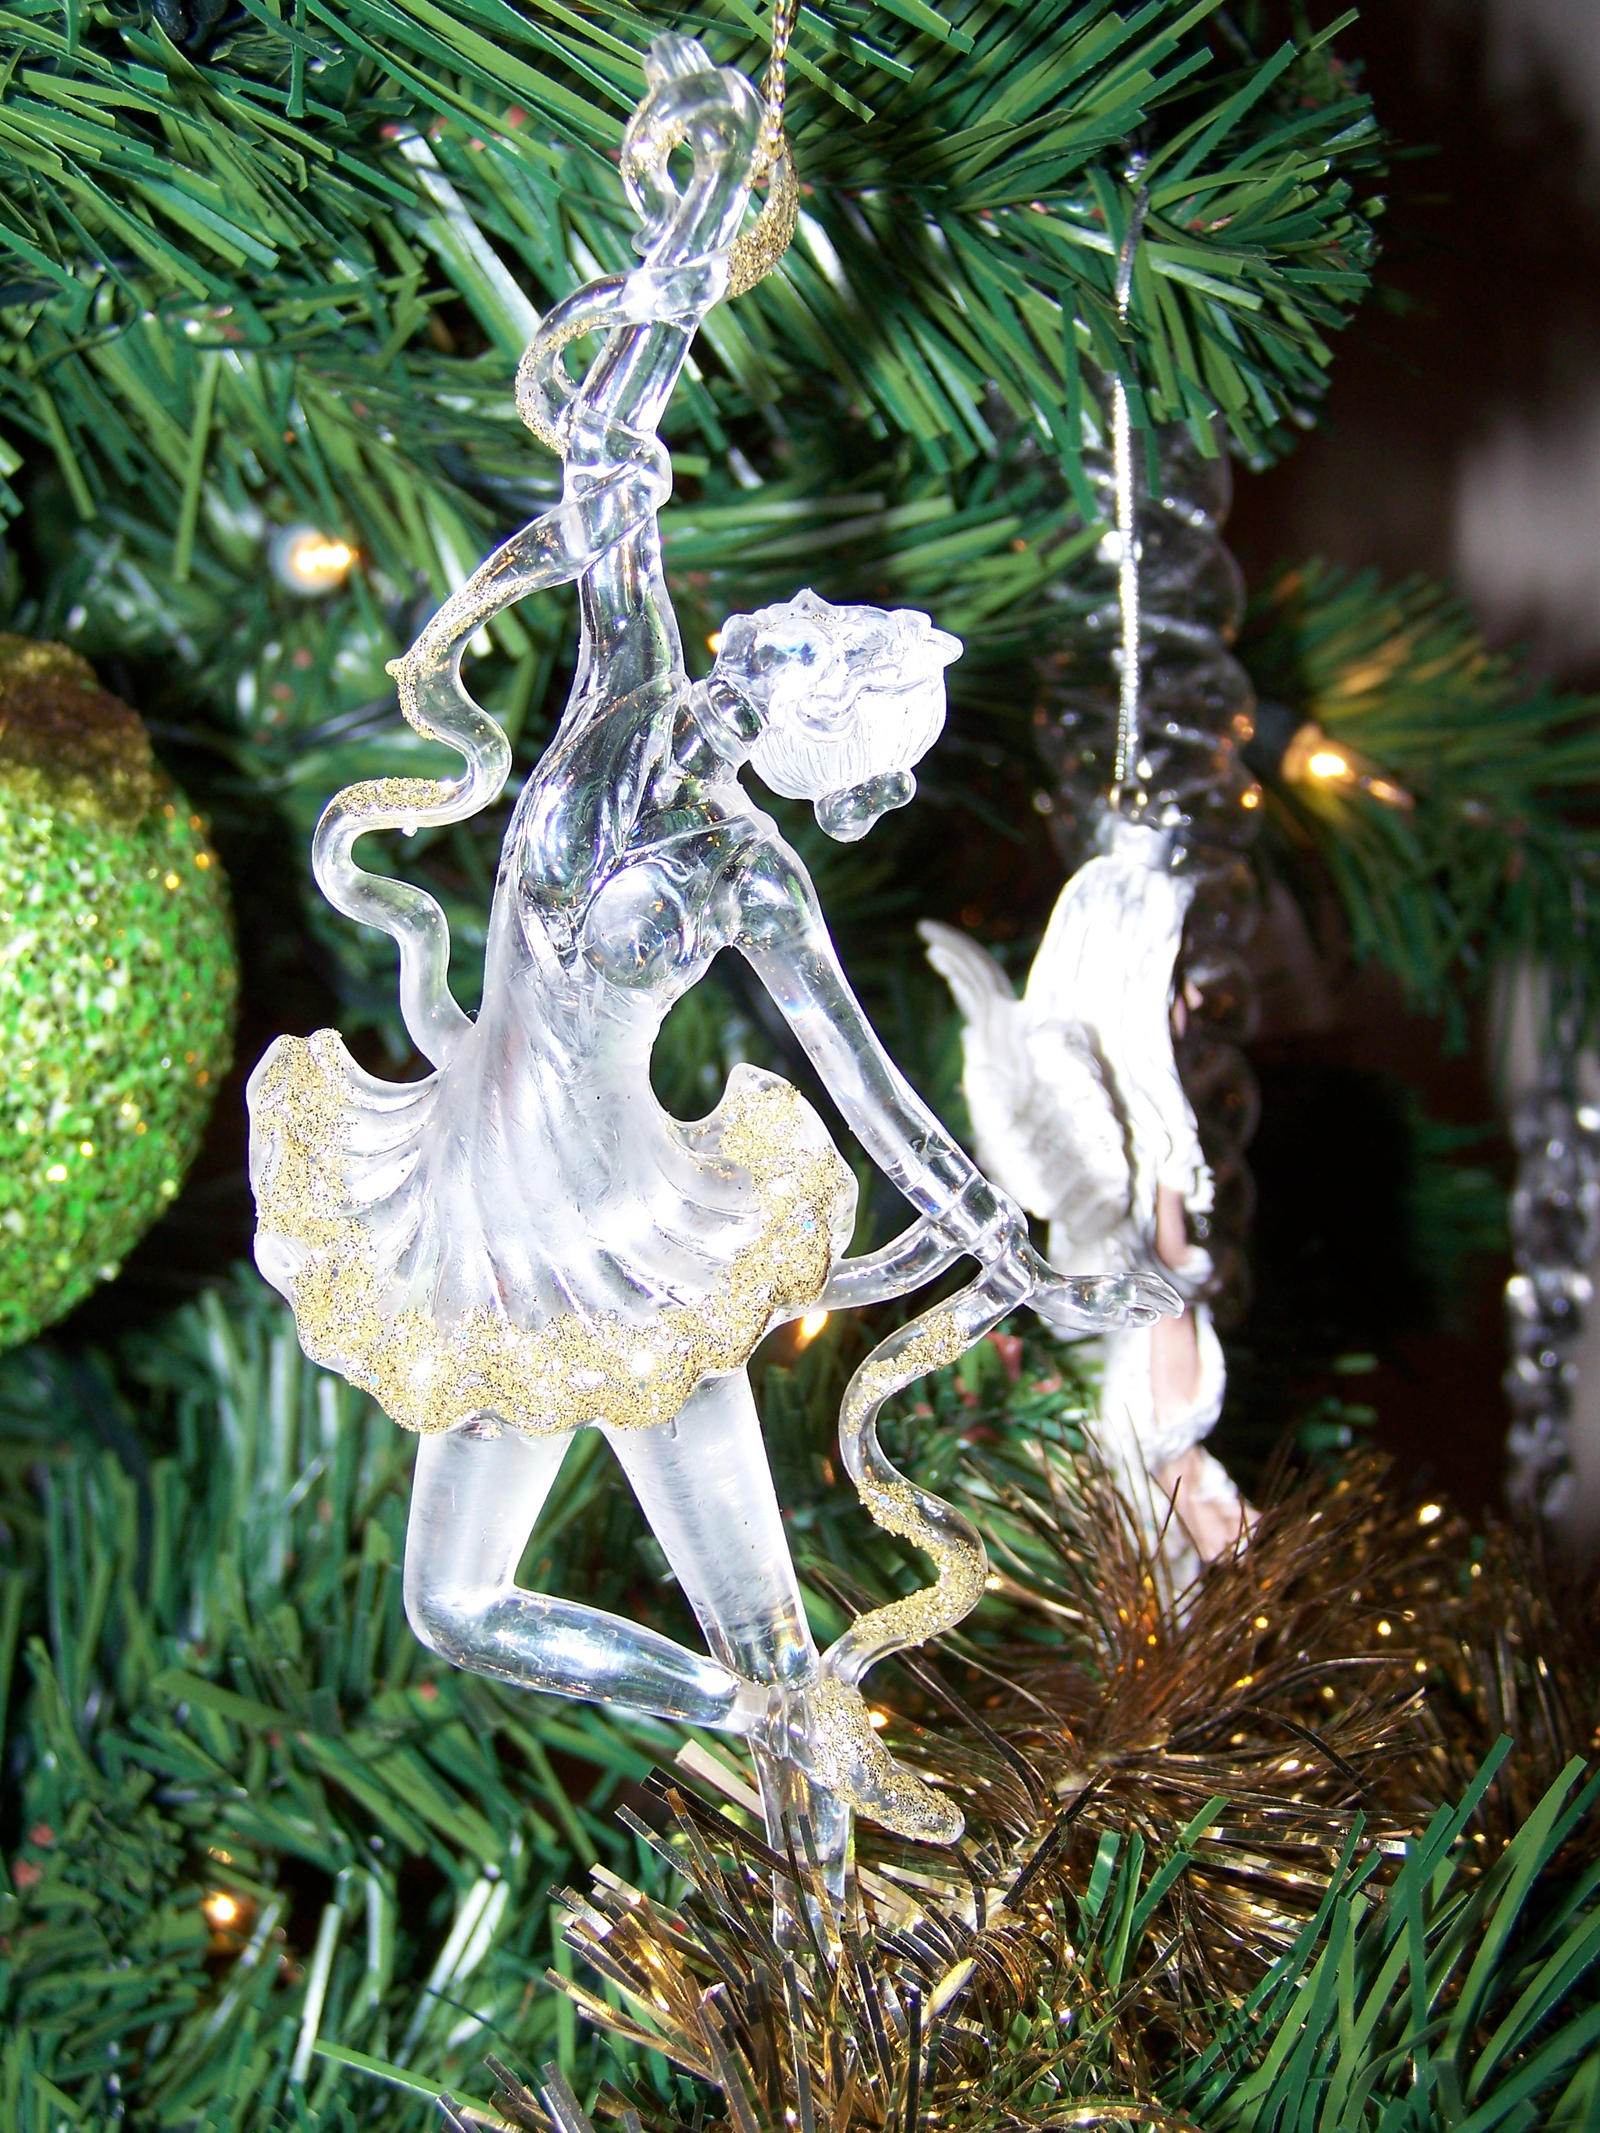 Christmas Ornament Dancer by seiyastock